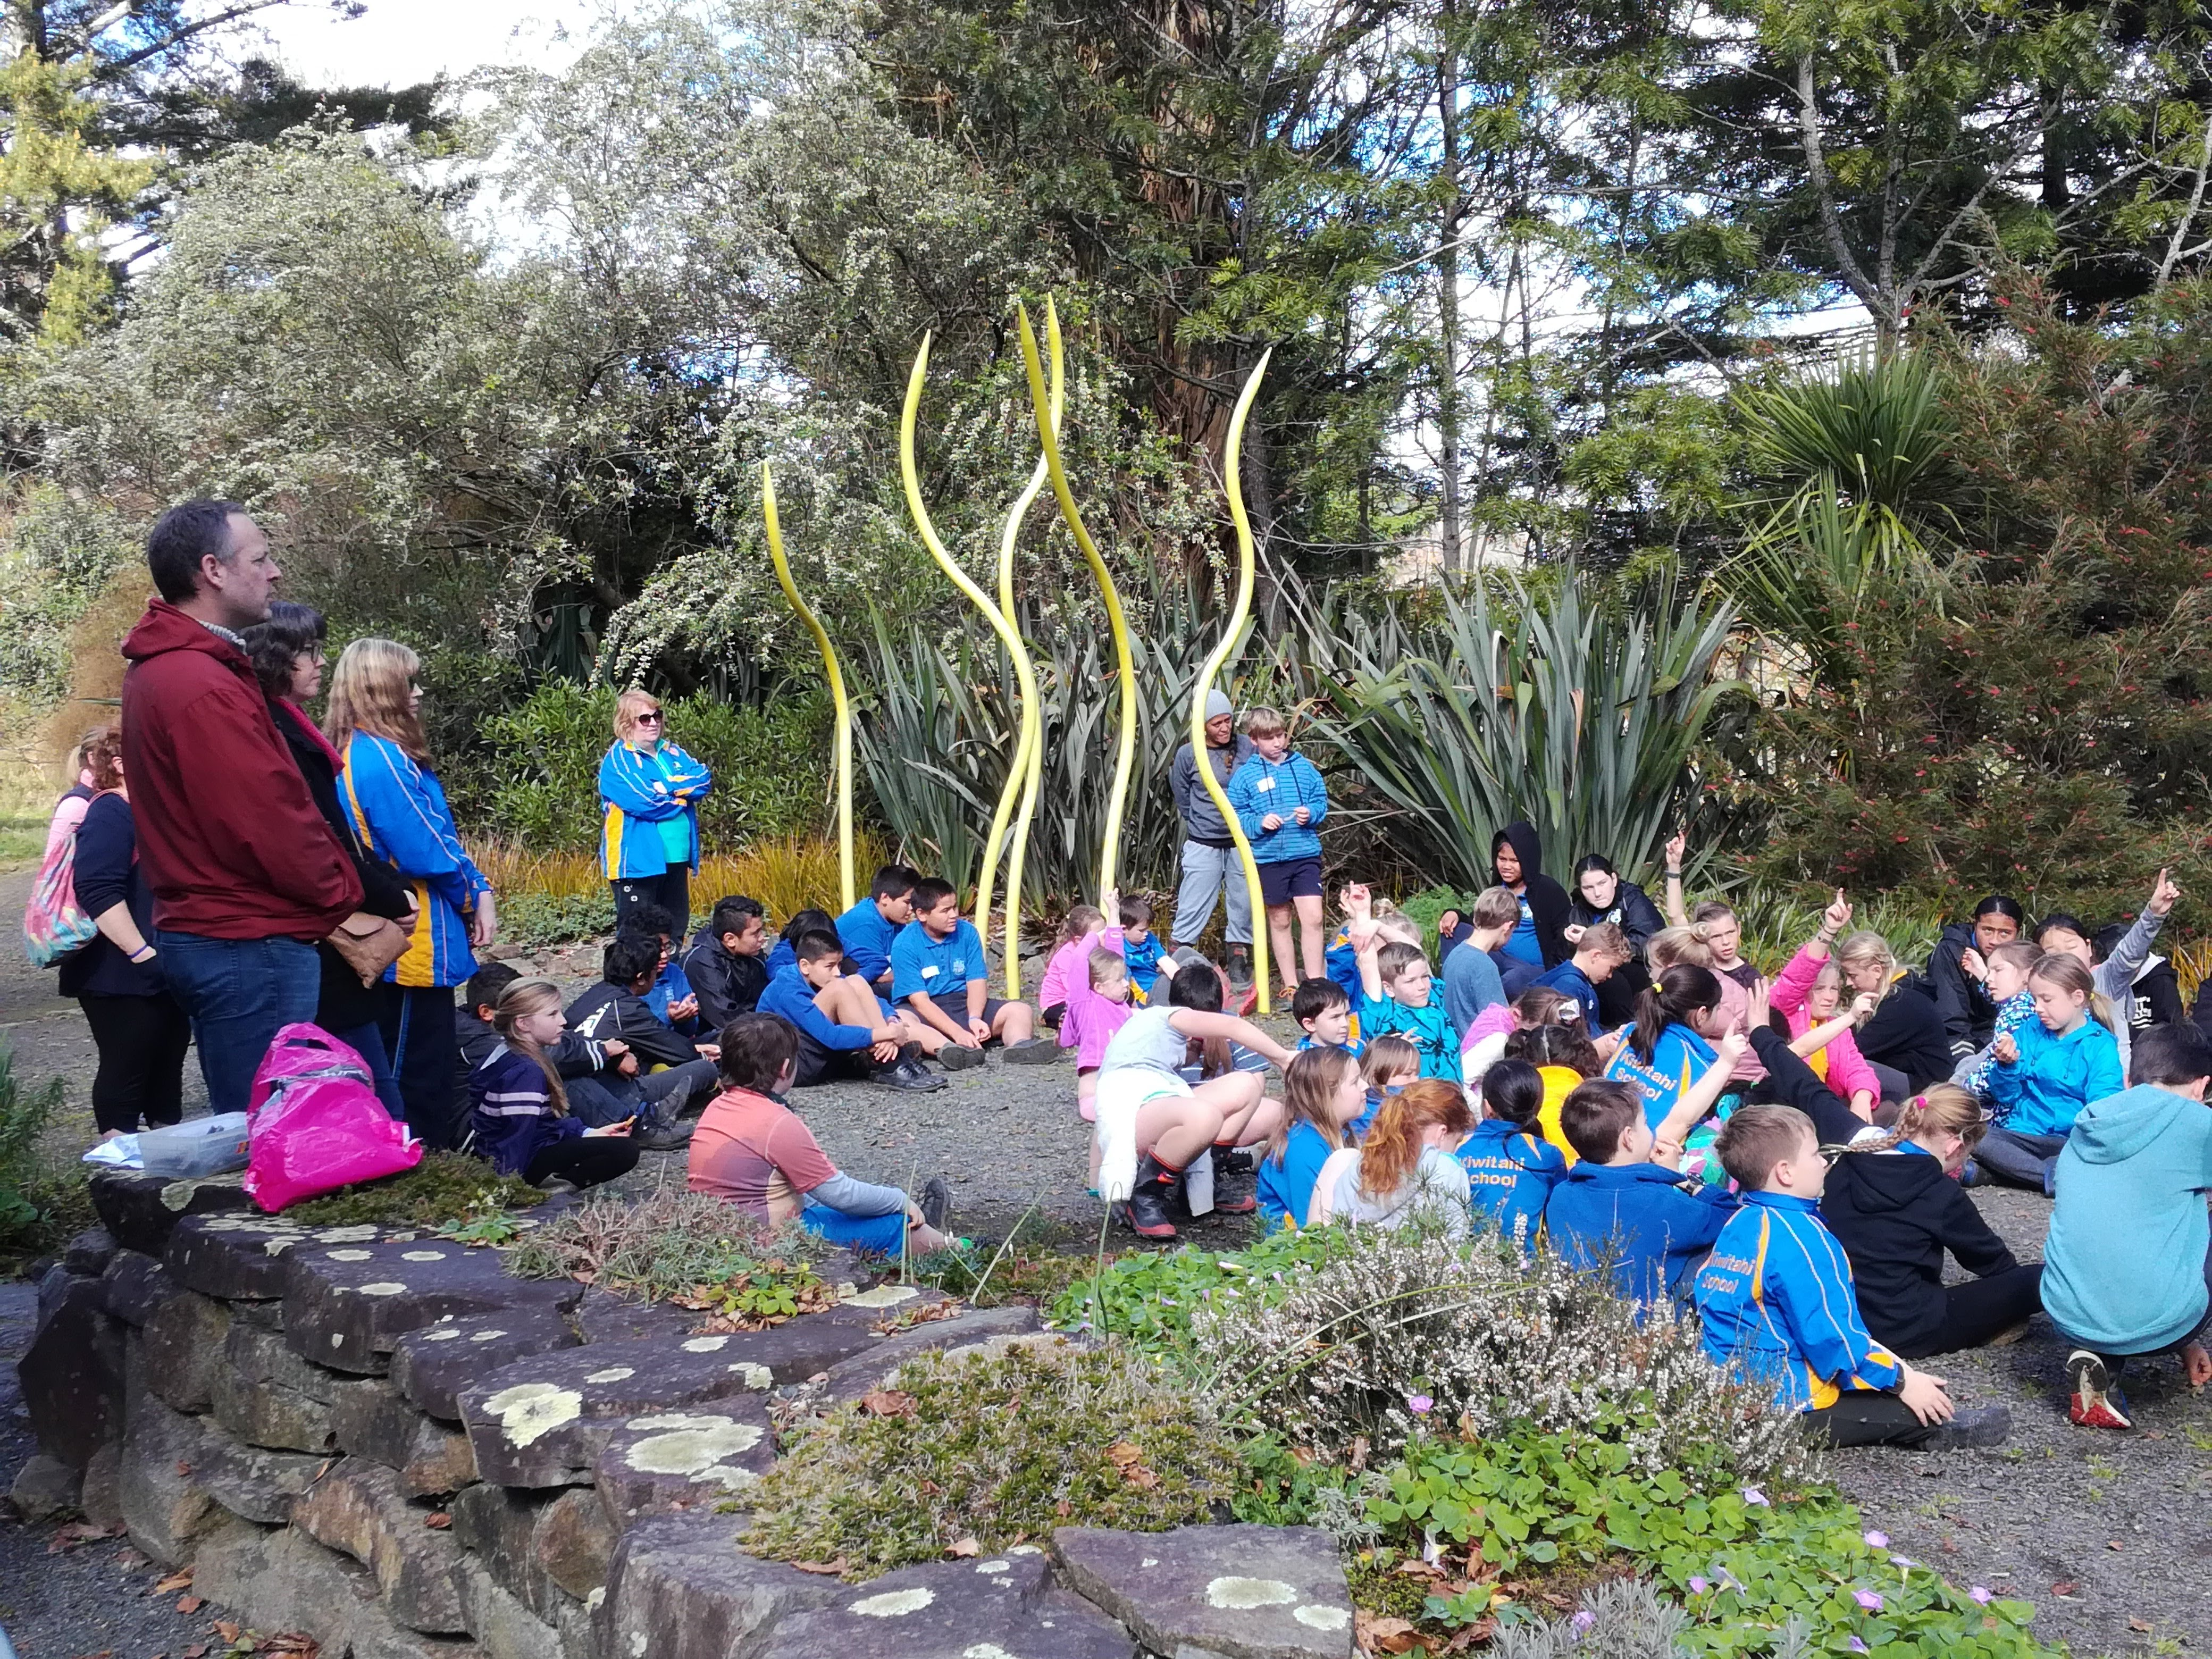 Exploring the outdoors through art | Waikato Enviroschools